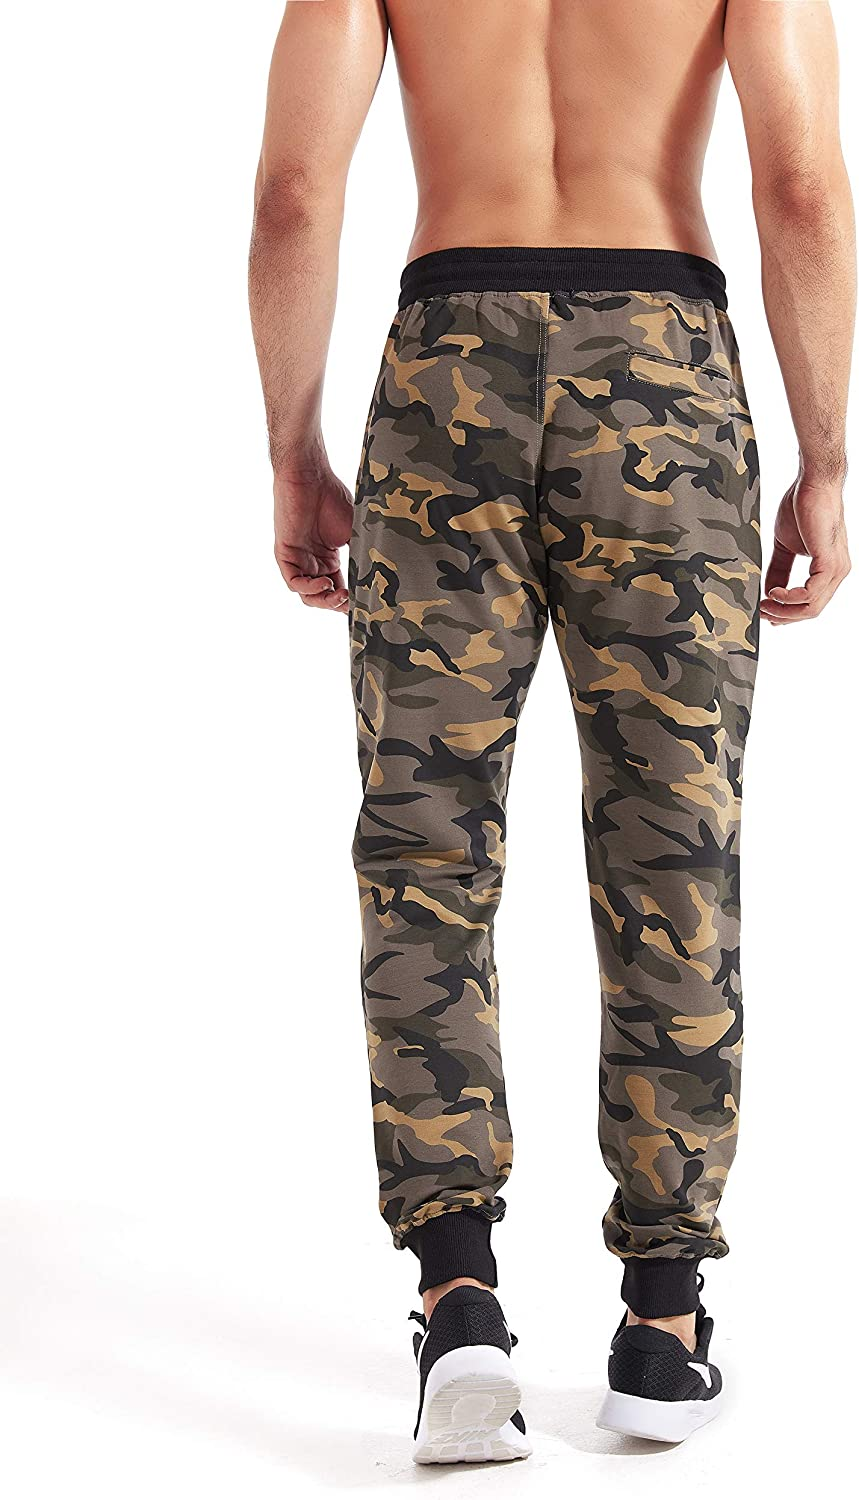 YITUOHEBANG Mens Cotton Casual Camouflage Sweatpants Jogger Pants with Drawstring Elastic Ankle Track Pants Camo Trouser